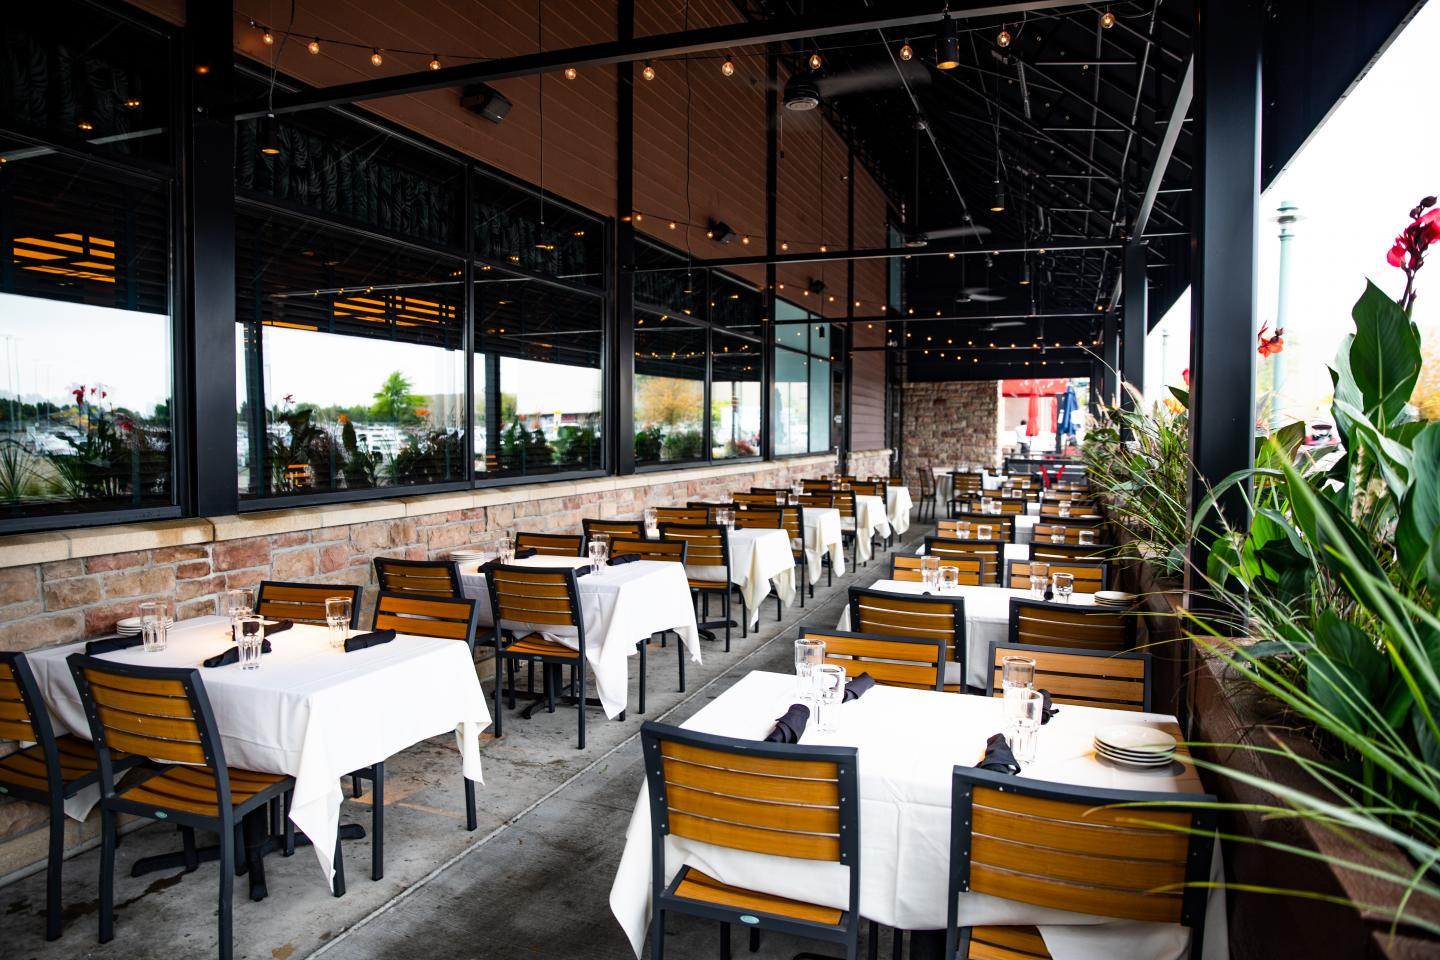 dine al fresco this patio season in the twin cities